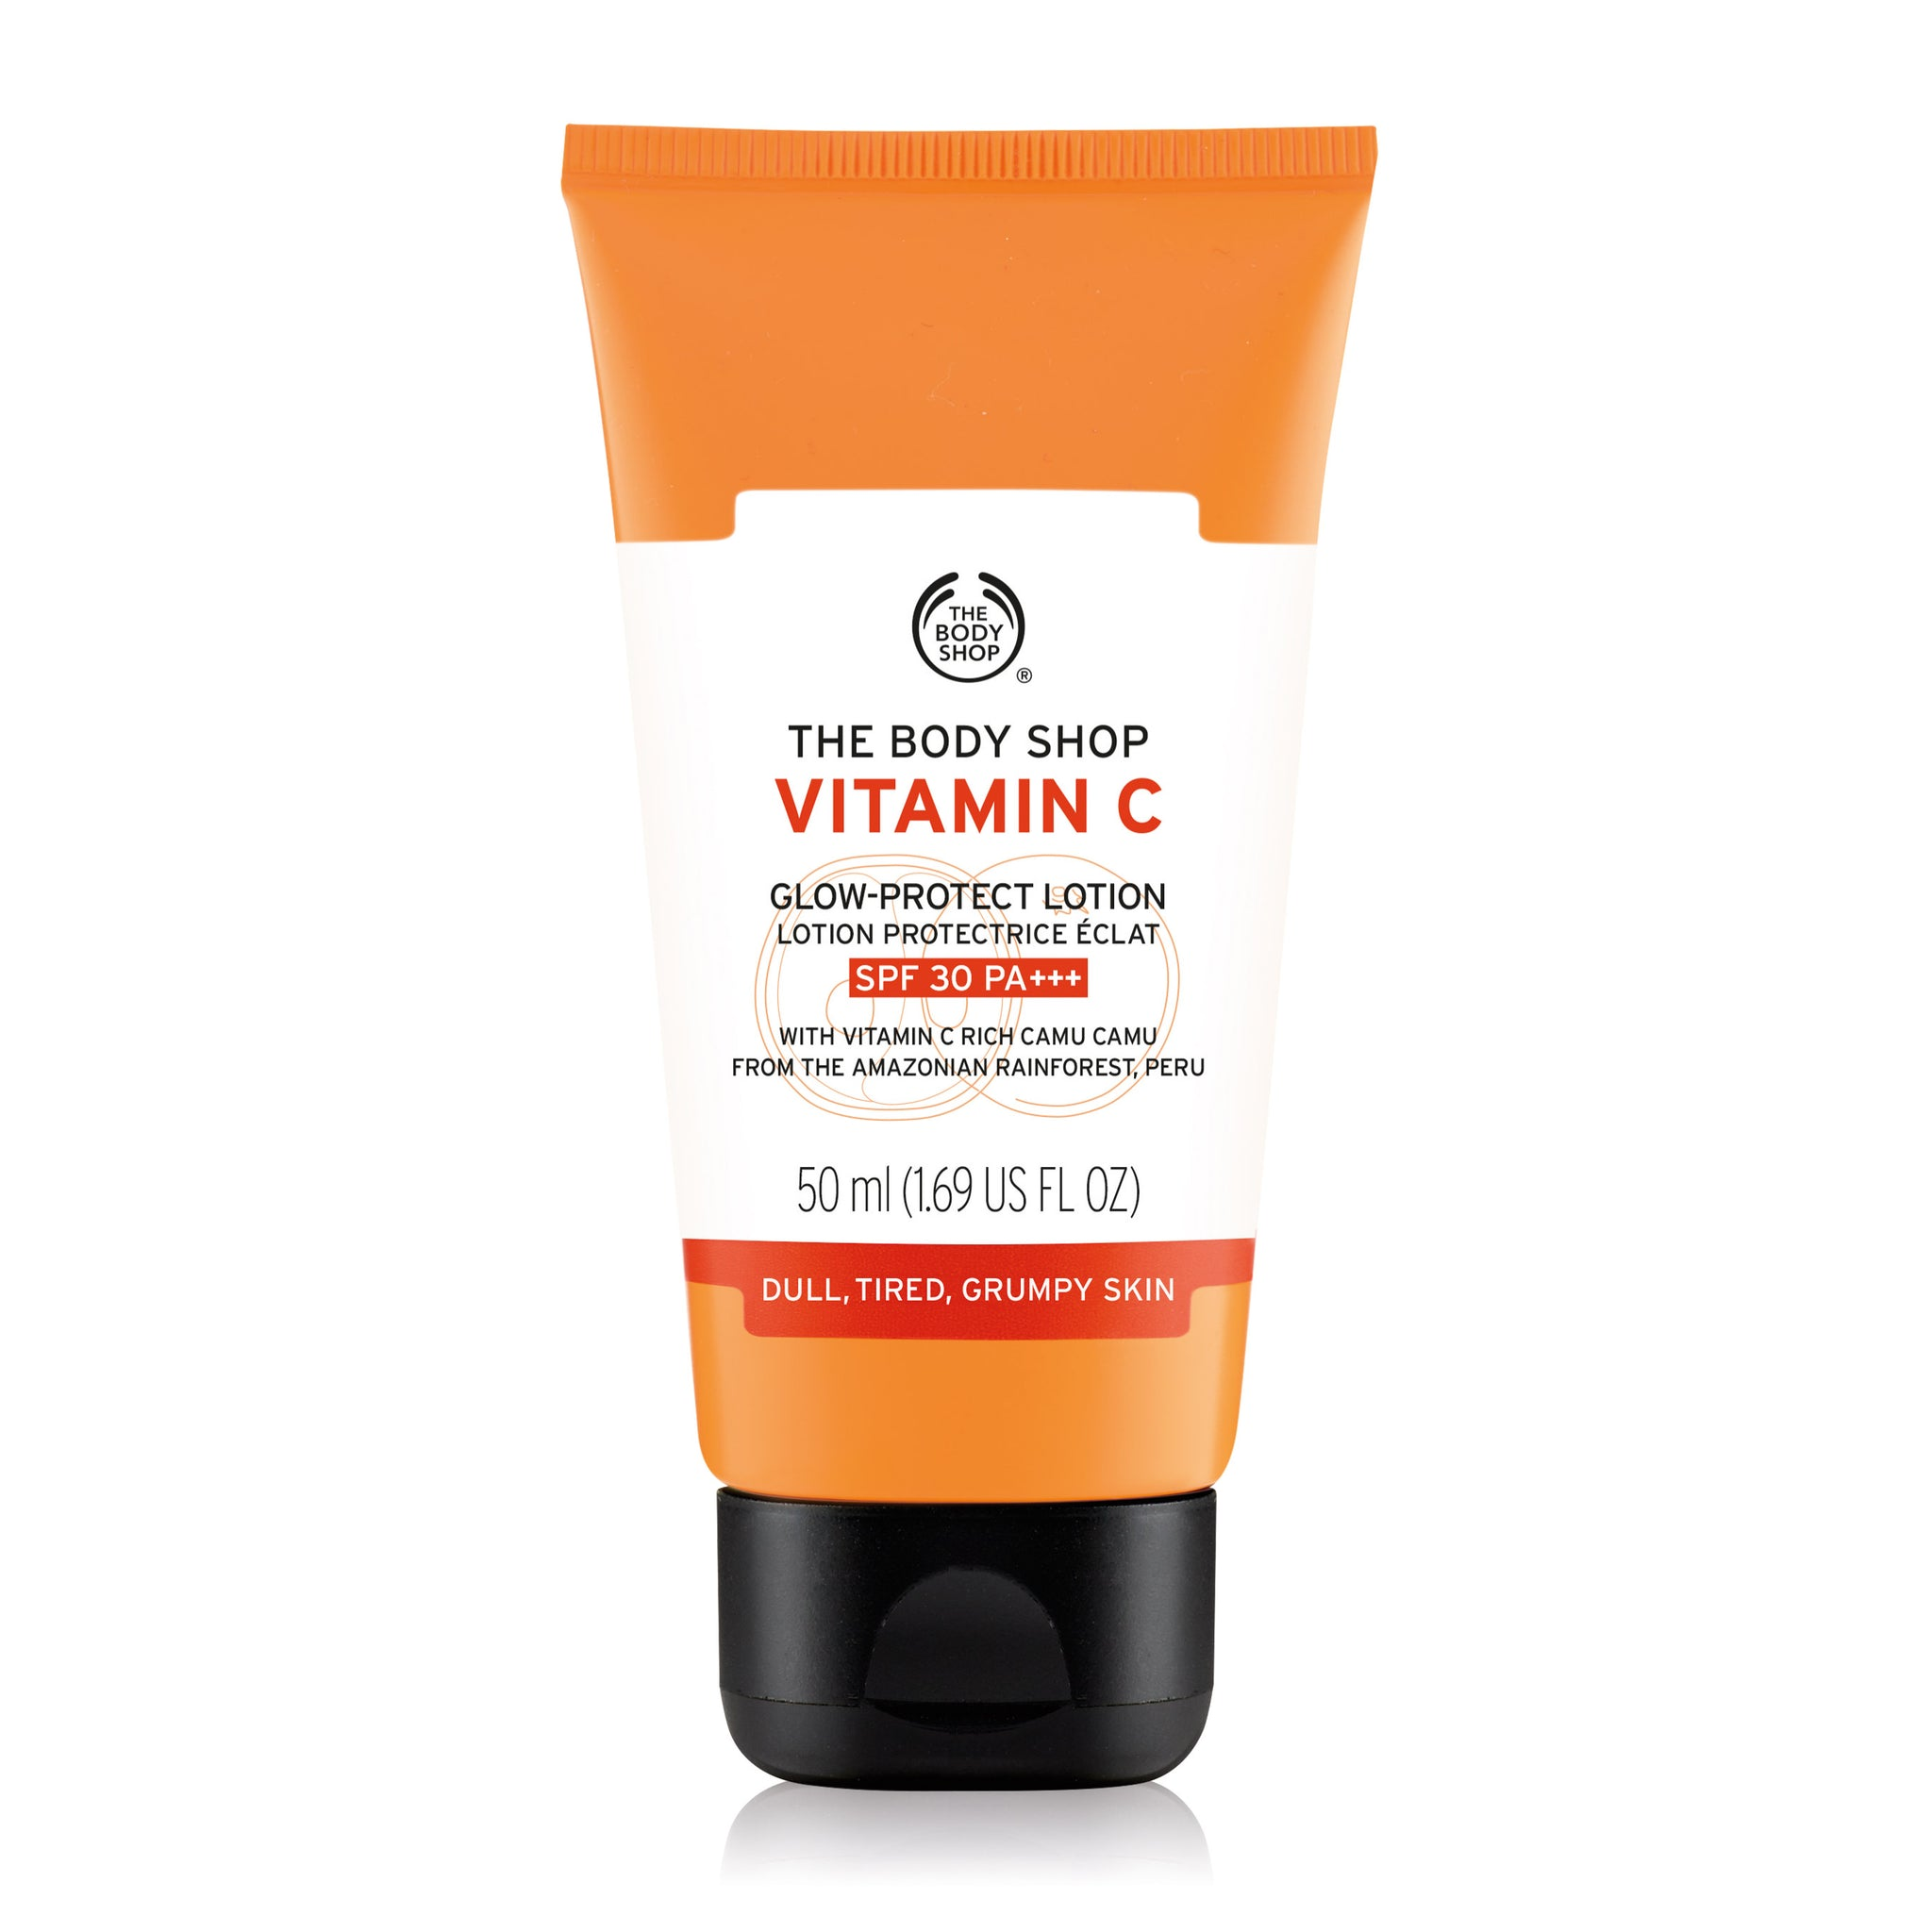 Vitamin C Glow-Protect Lotion SPF30